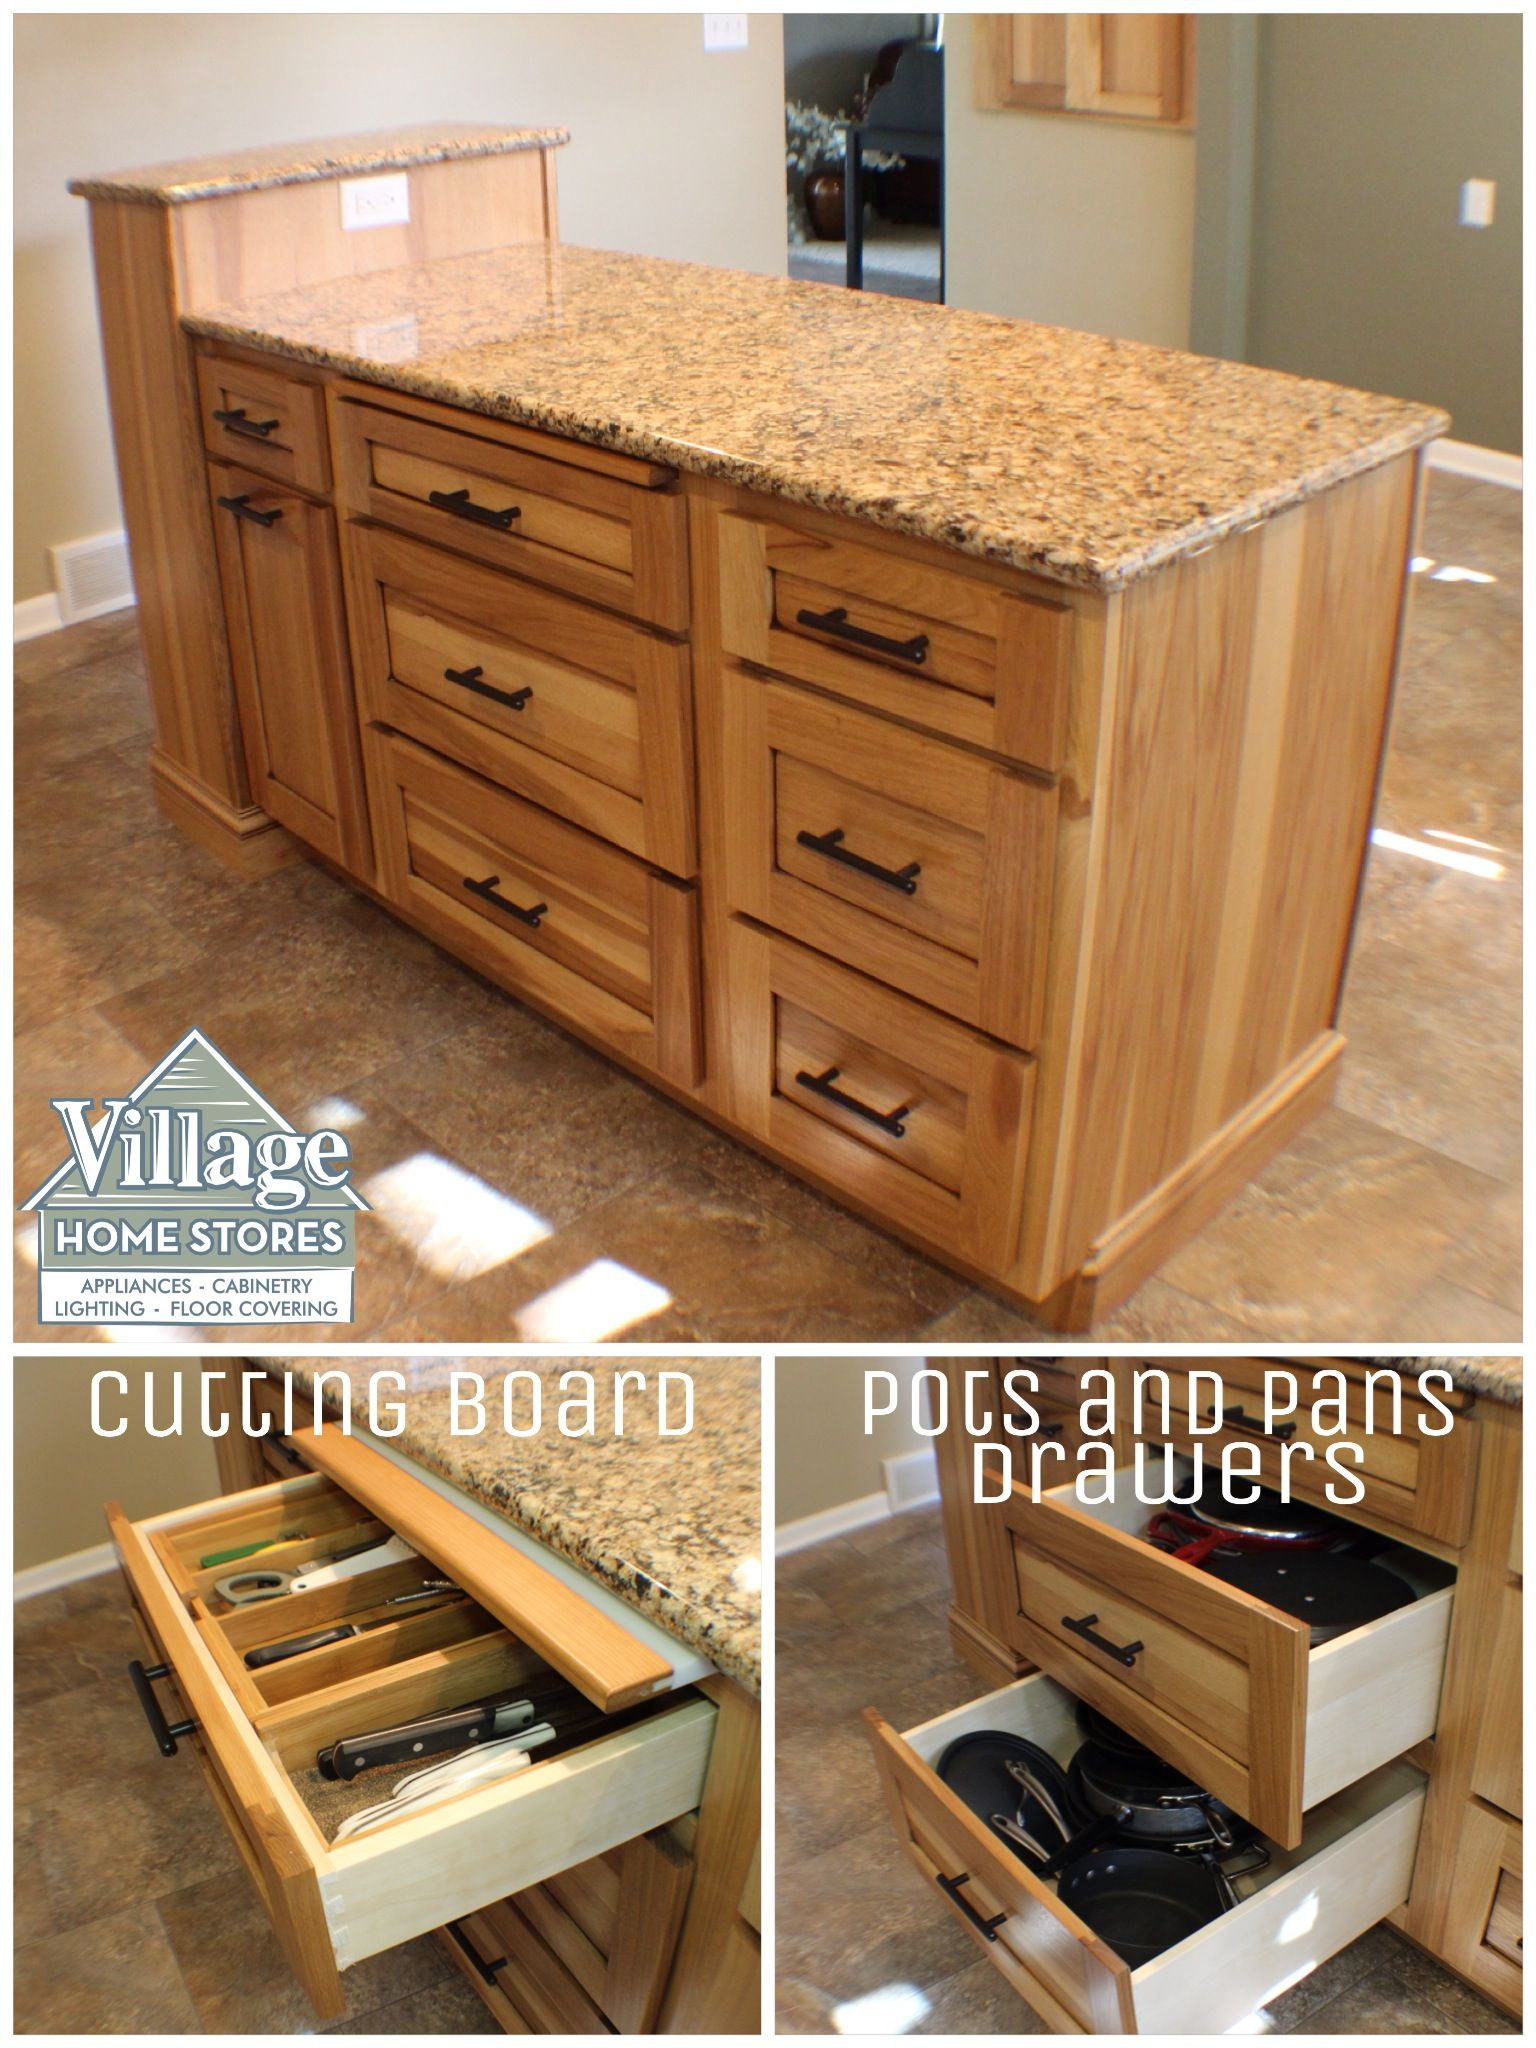 Large Drawers For Pots And Pans Storage In This Kitchen Island Design A Pullout Kitchen Island With Drawers Kitchen Storage Solutions Kitchen Island Design